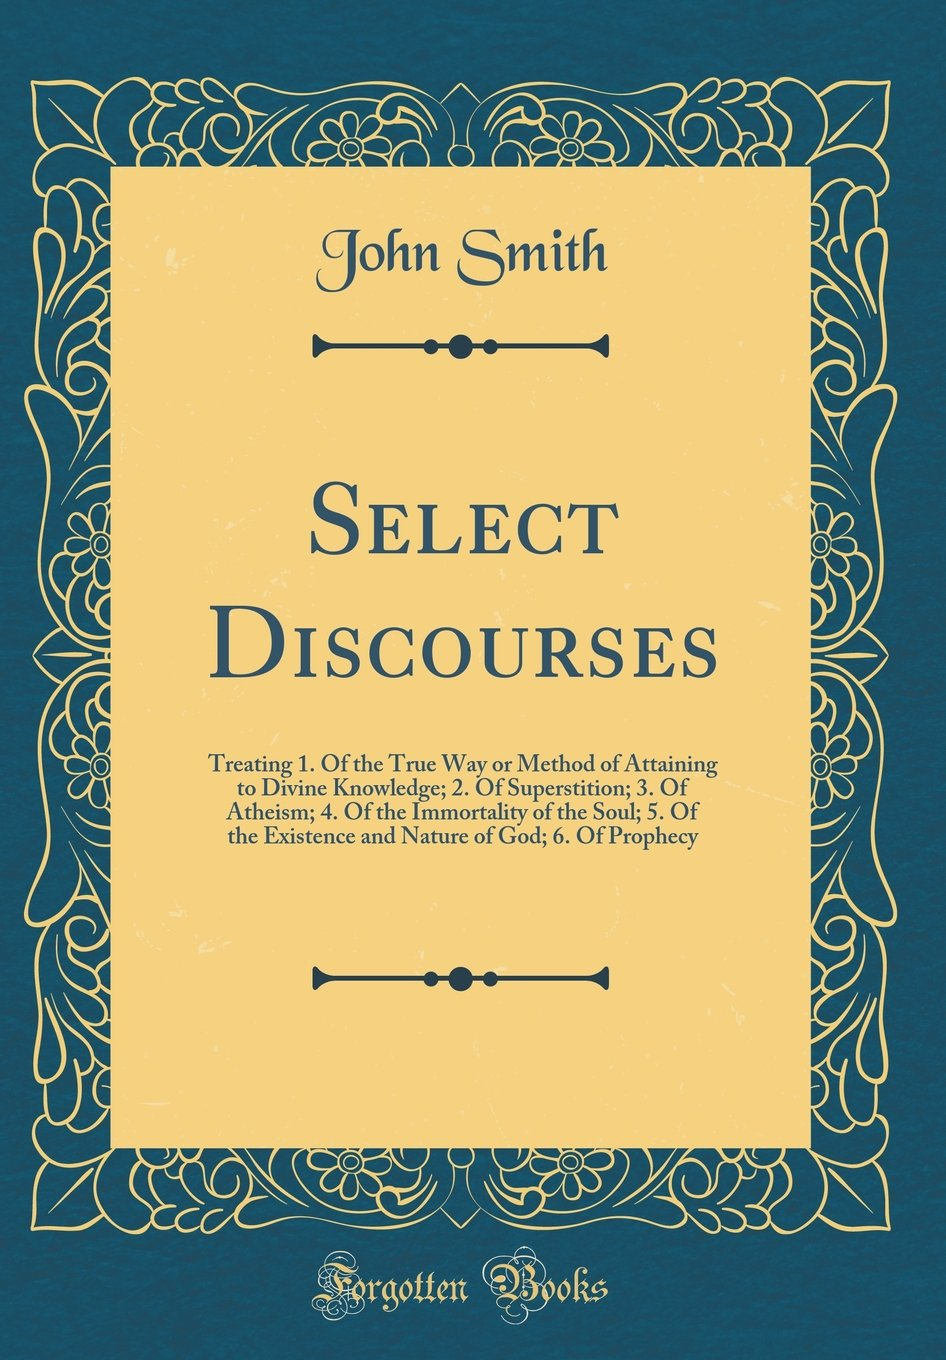 Read Online Select Discourses: Treating 1. Of the True Way or Method of Attaining to Divine Knowledge; 2. Of Superstition; 3. Of Atheism; 4. Of the Immortality of ... of God; 6. Of Prophecy (Classic Reprint) pdf